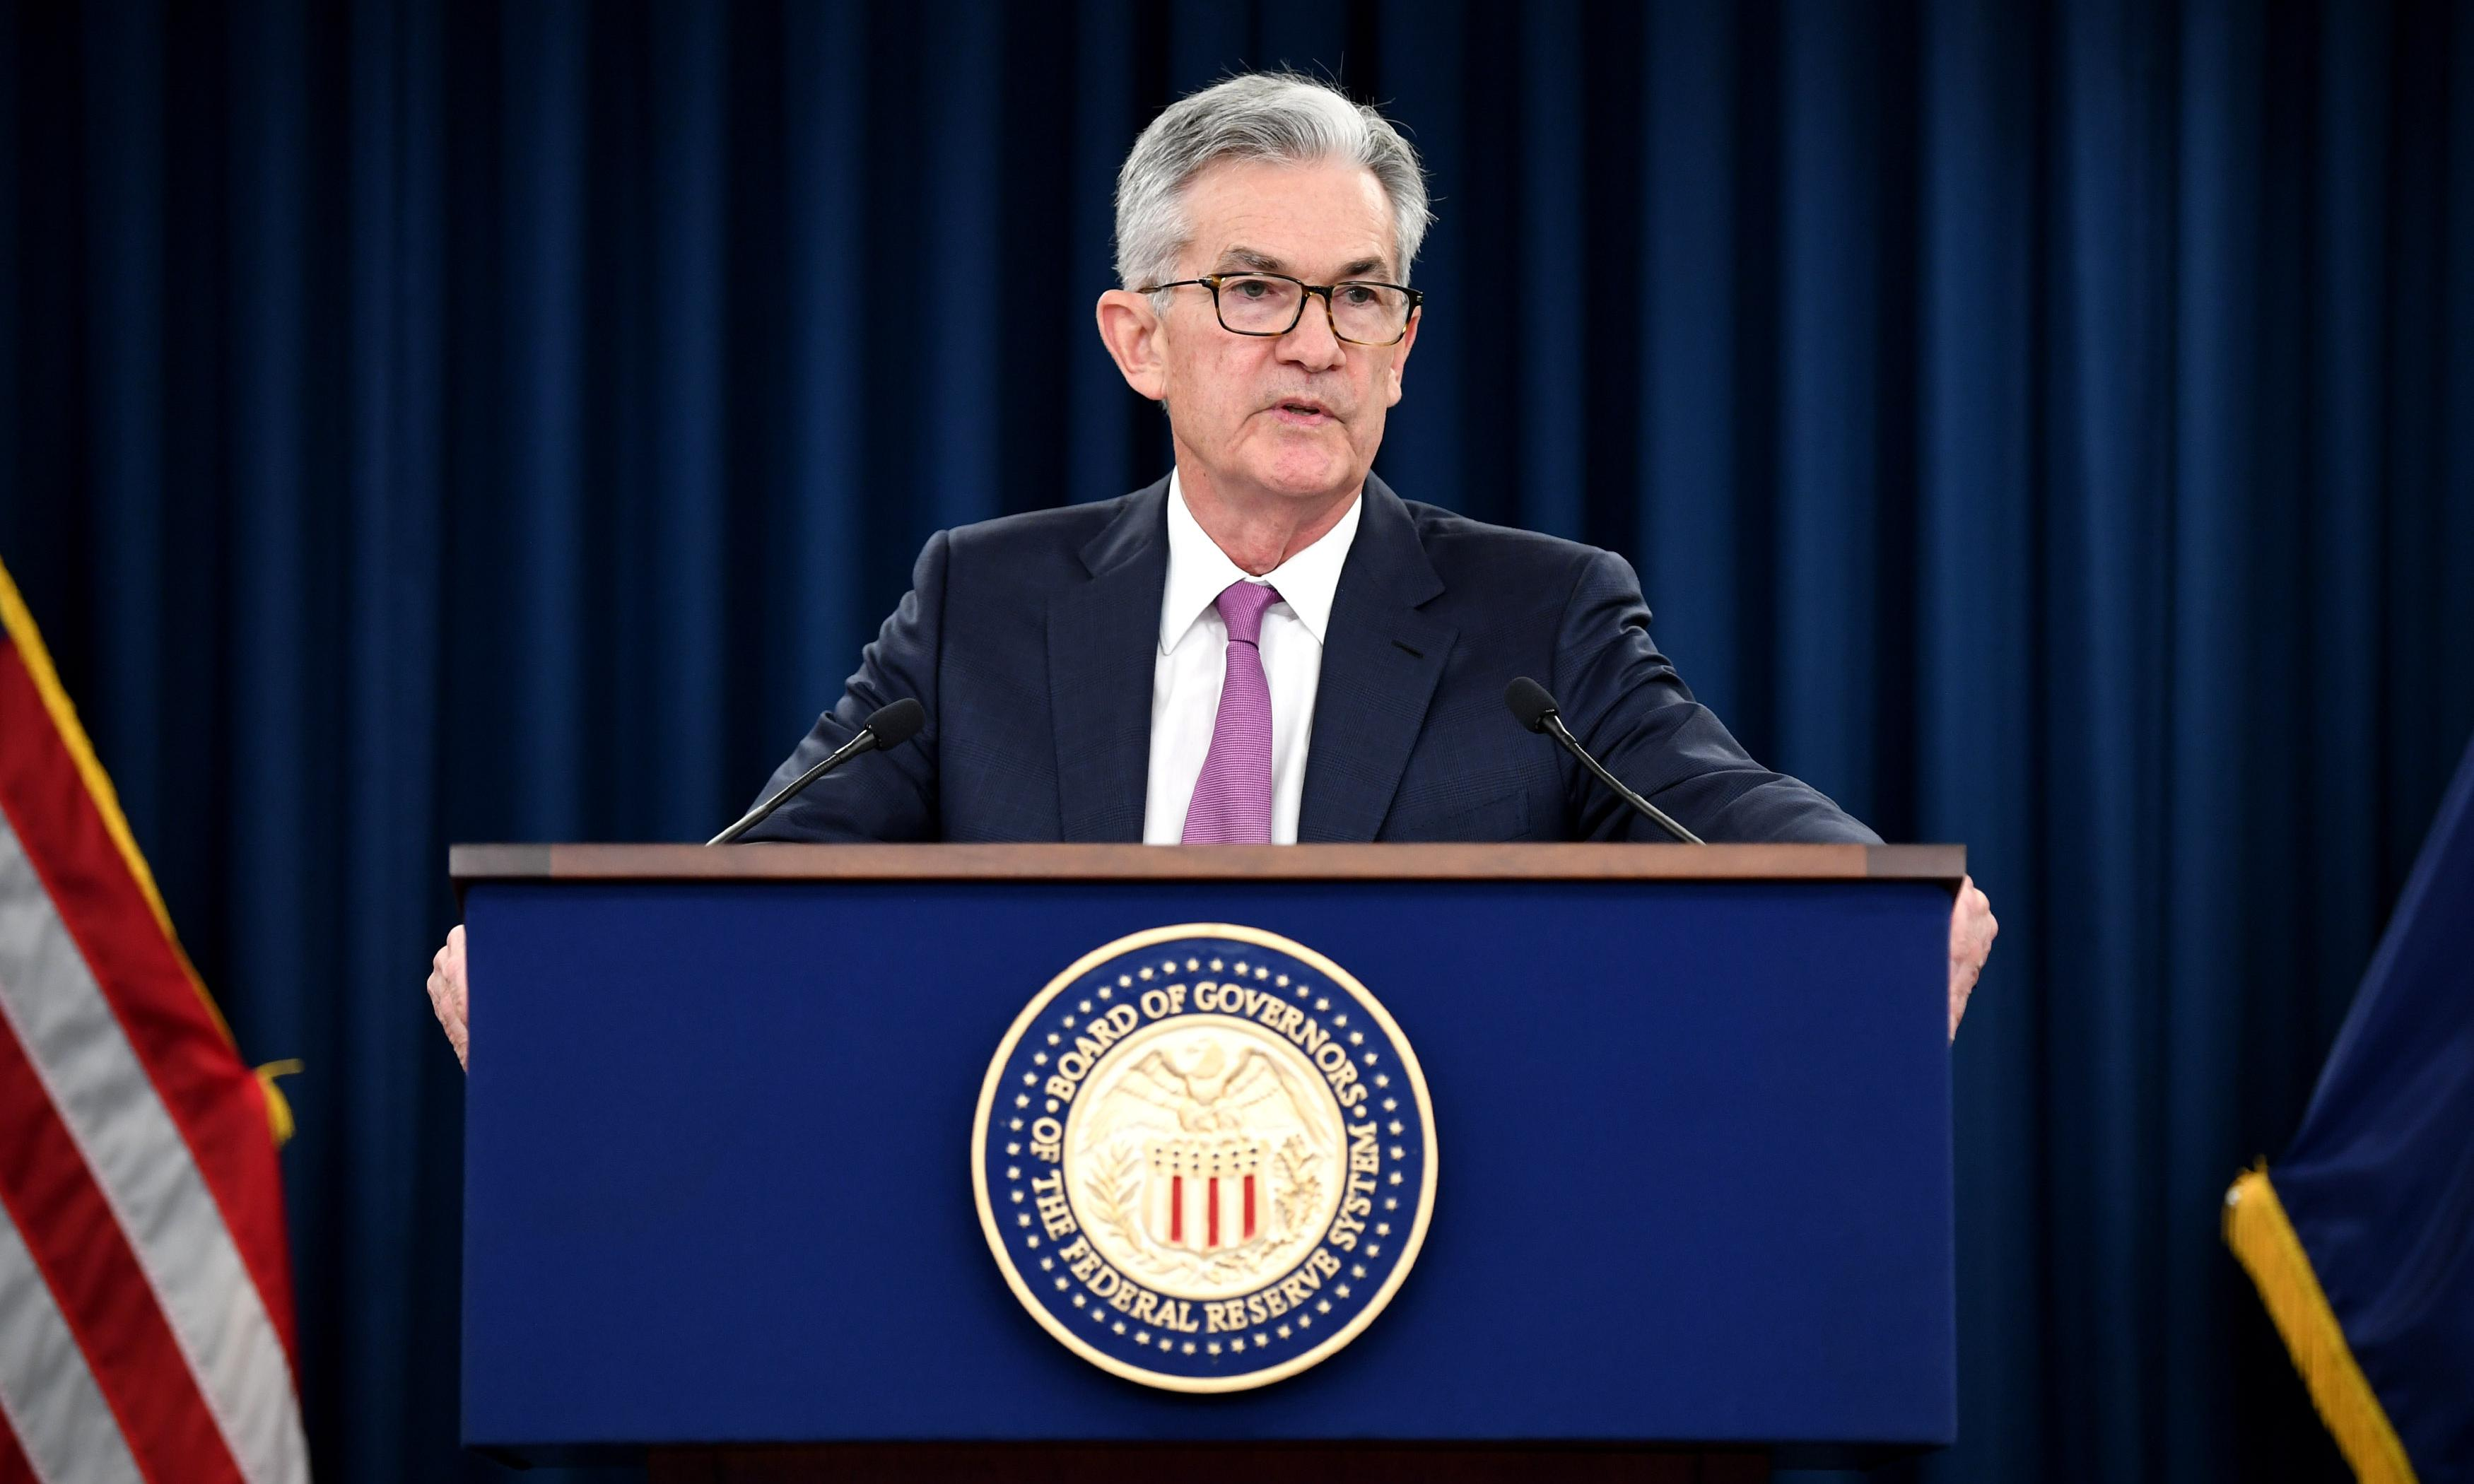 Trump denies 'ever threatening to demote' Fed chairman Jerome Powell